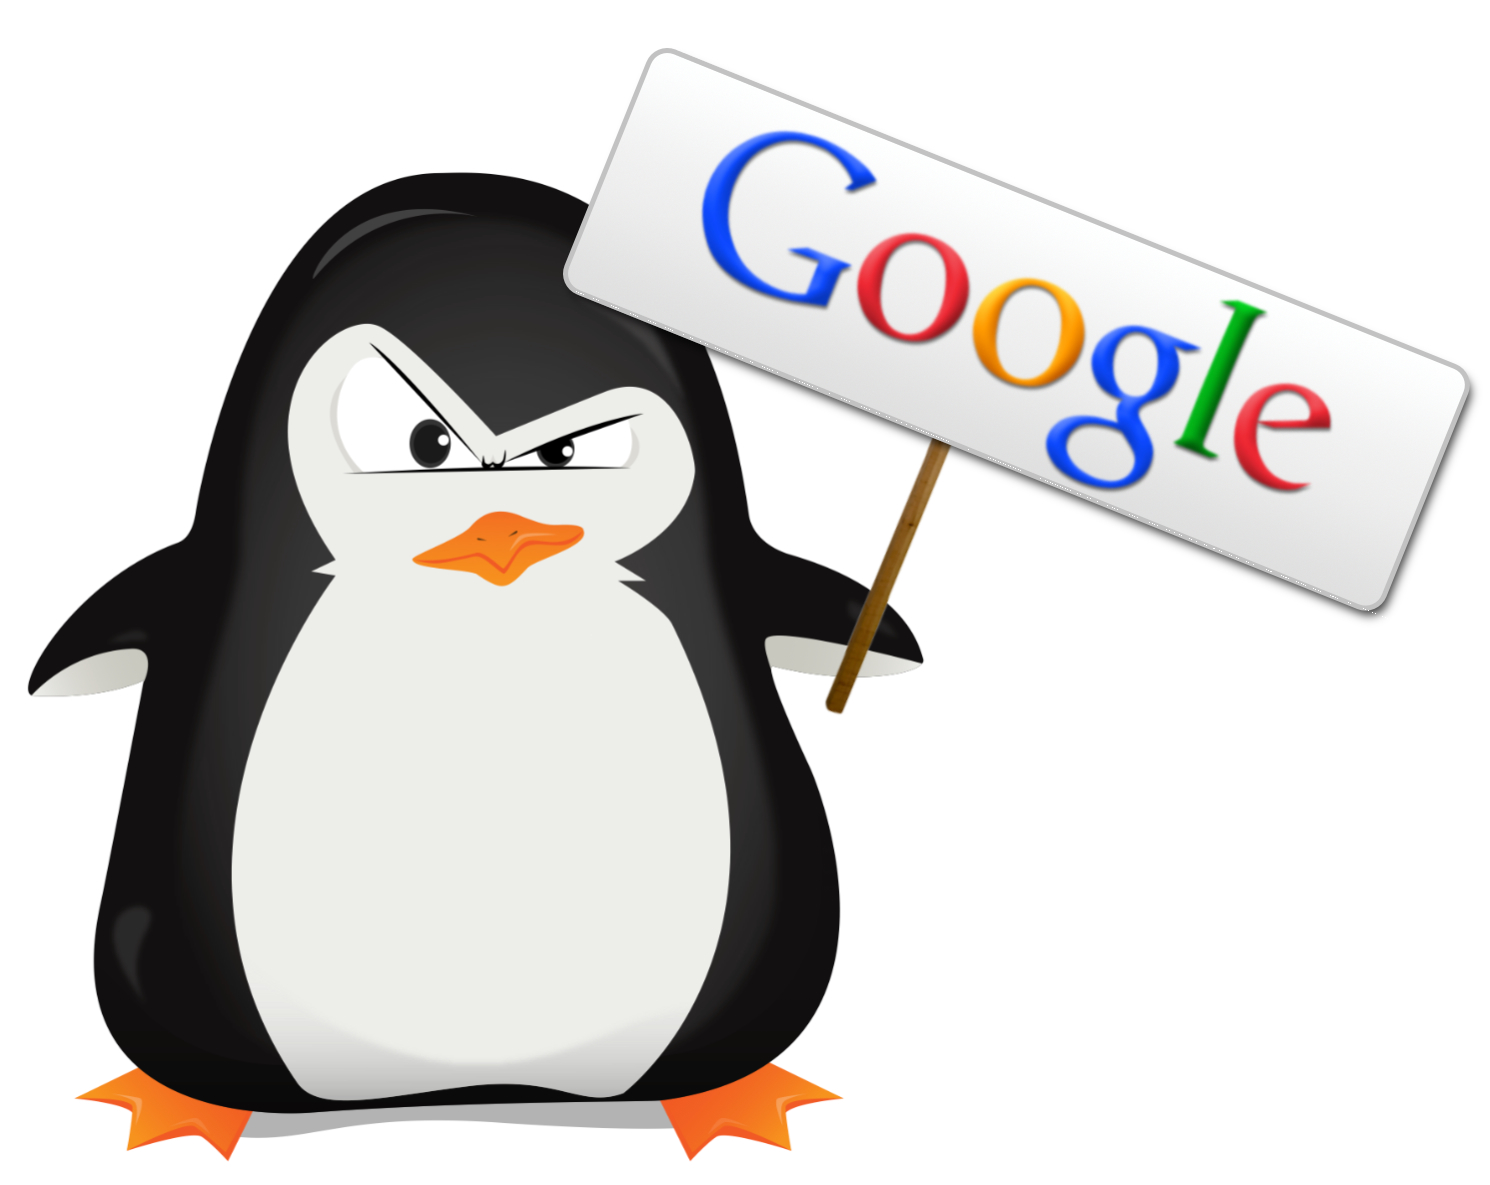 Next update will make Google's very own Penguin real time